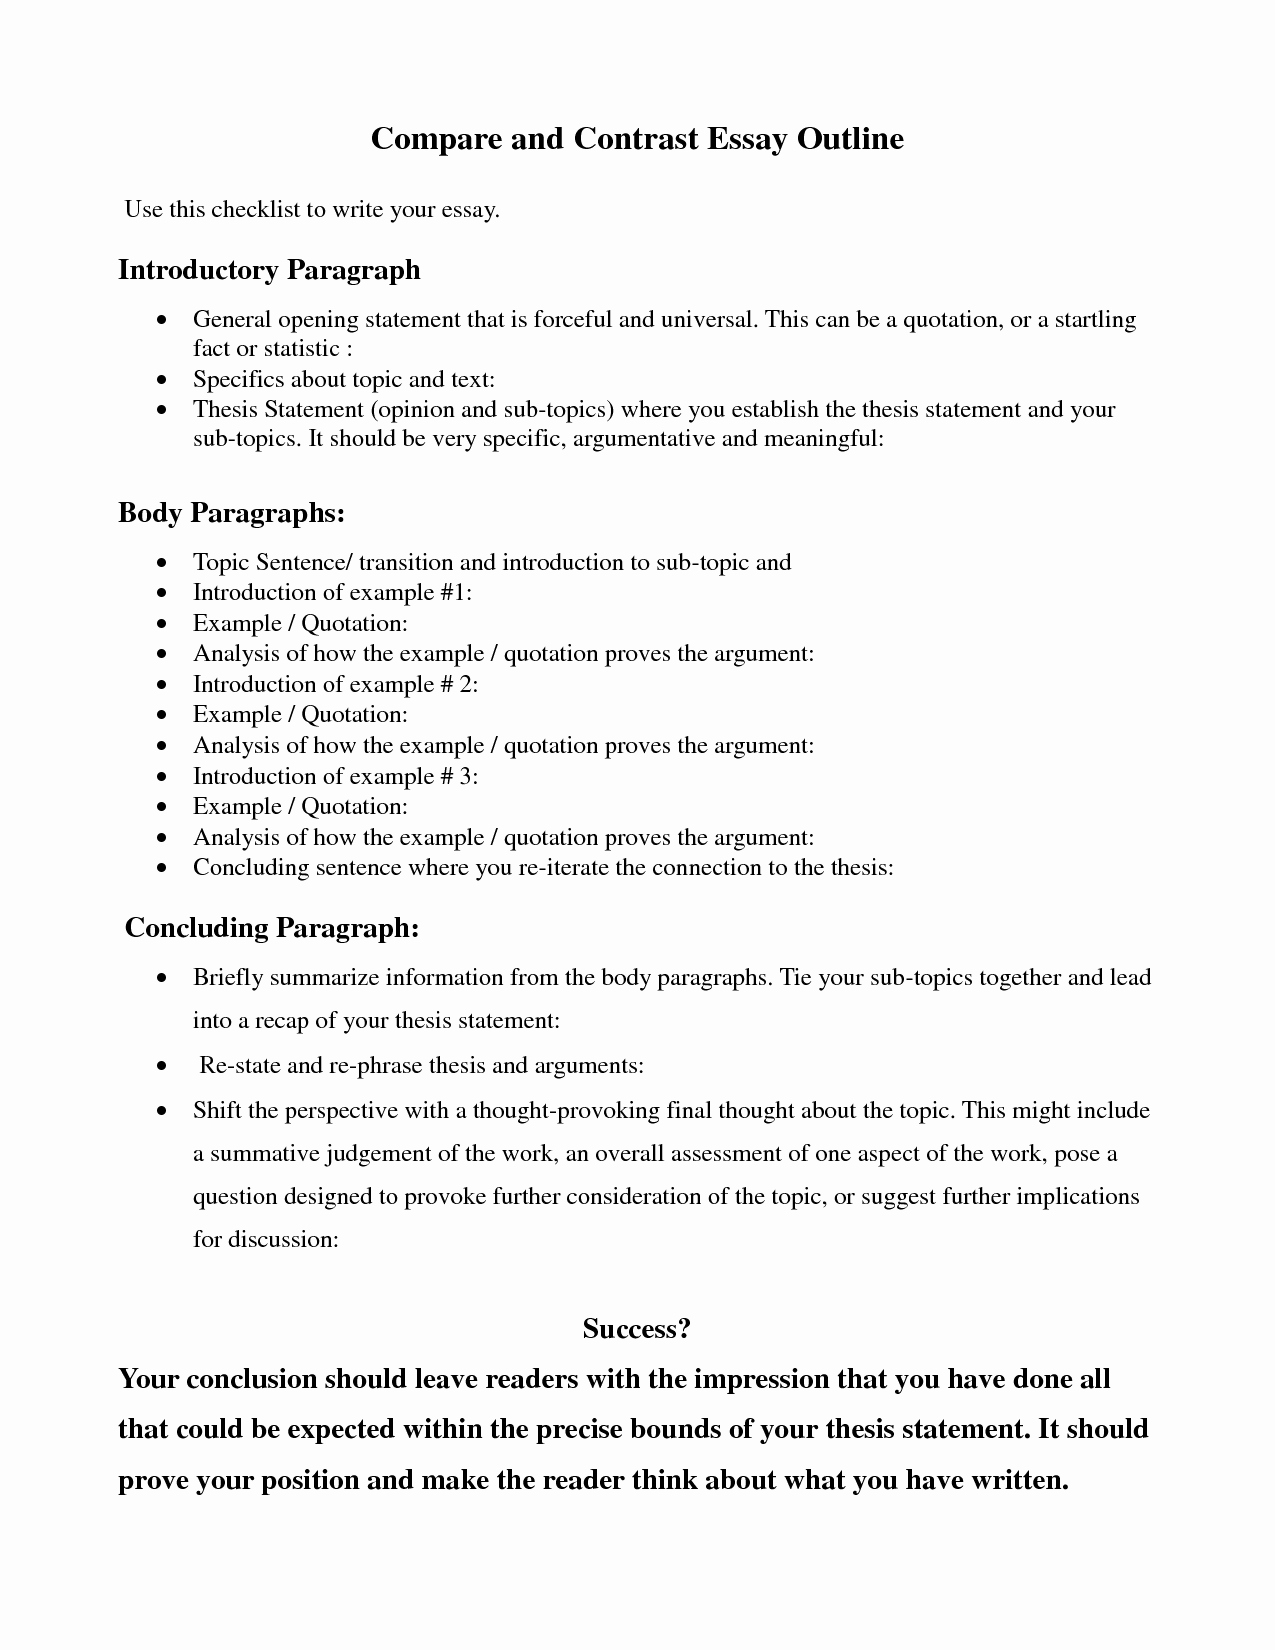 Art Institute Essay Example Lovely Pare Contrast Essay Outline Google Search